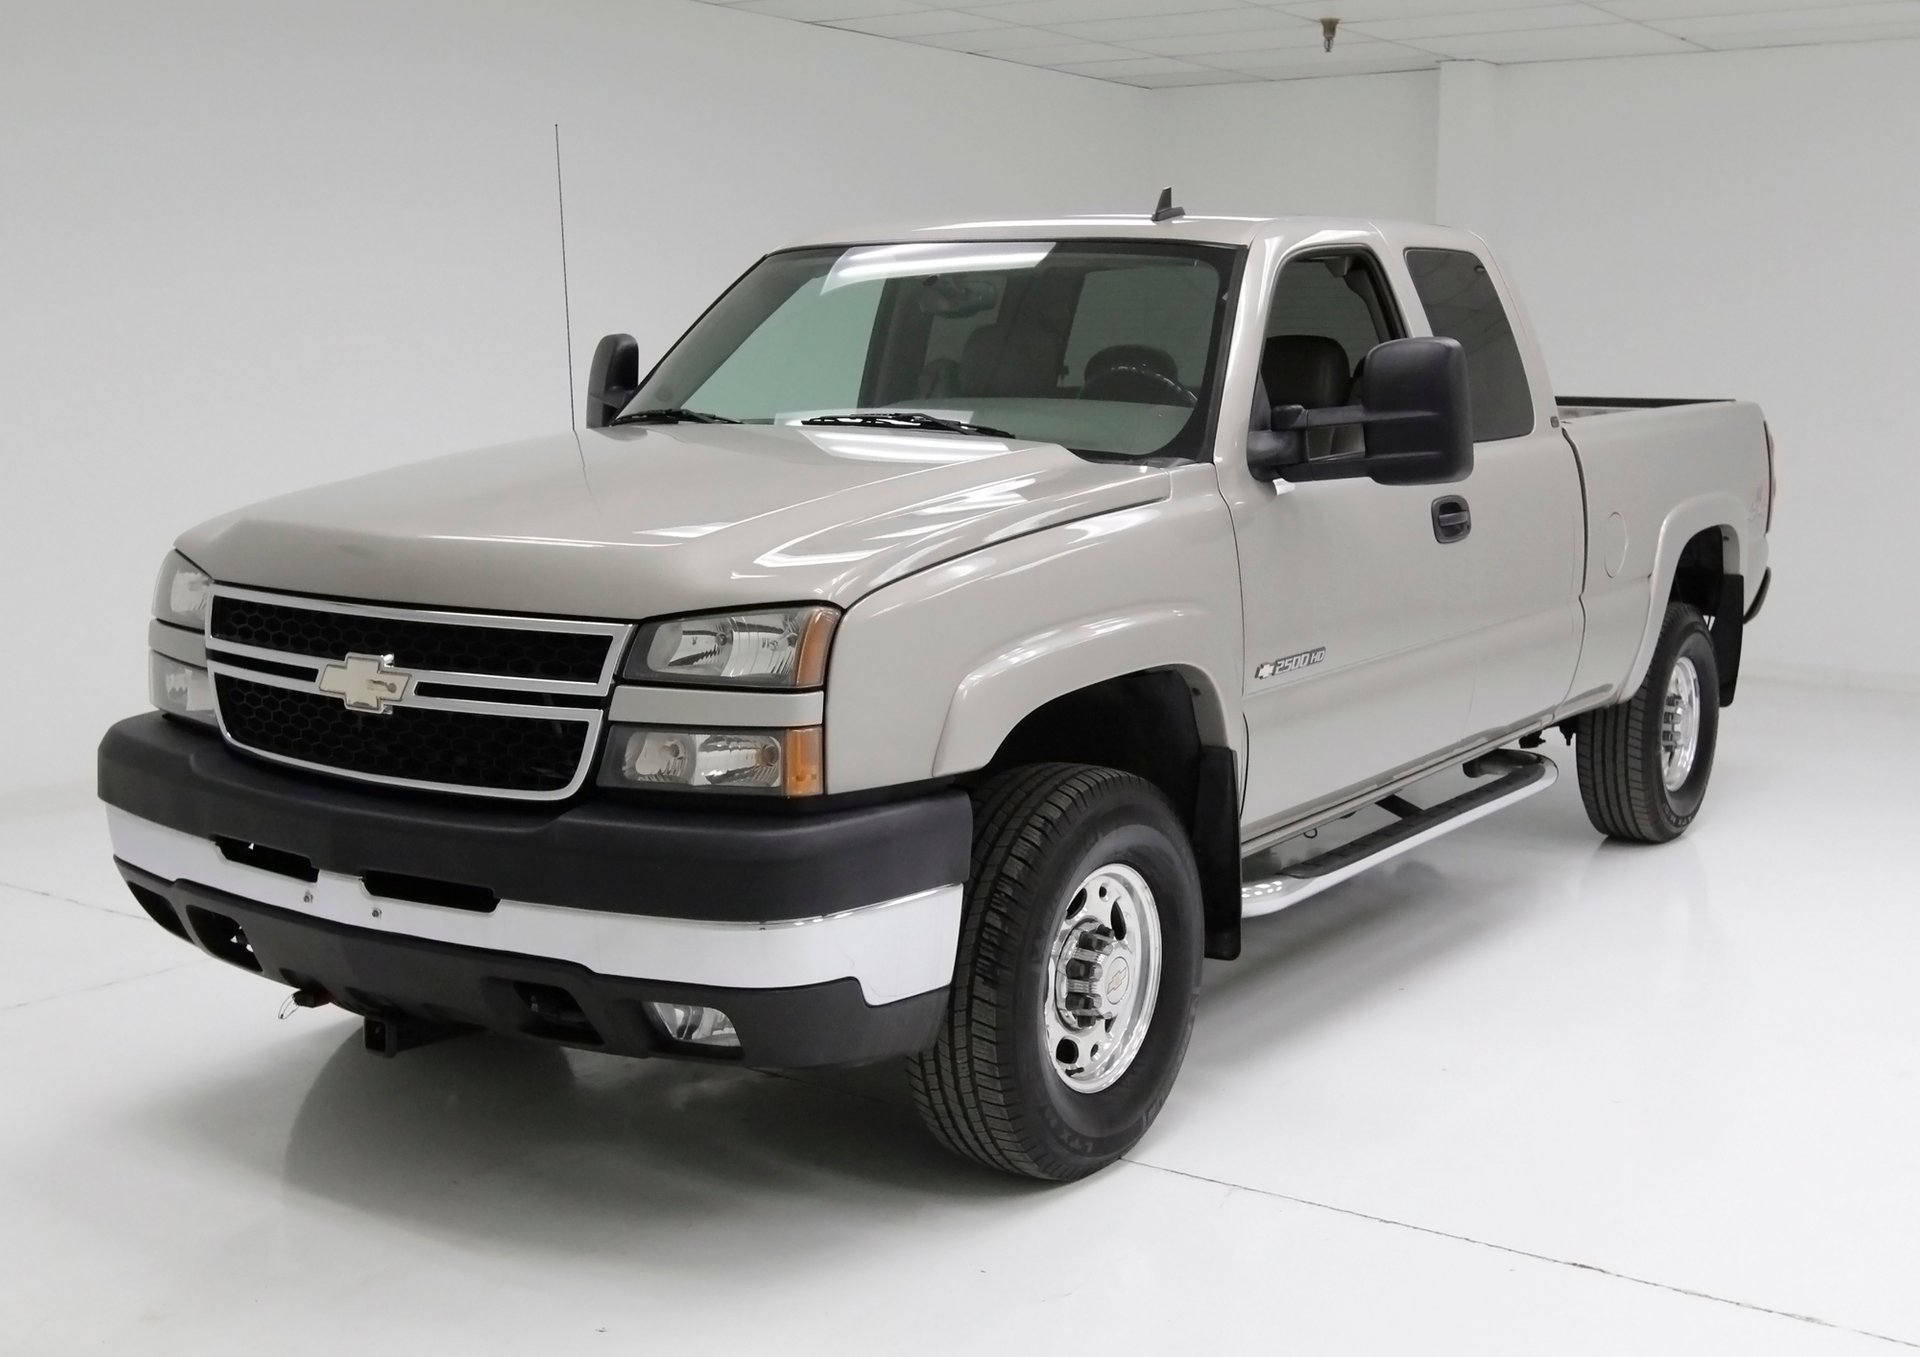 2007 Chevrolet 2500 Pick Up